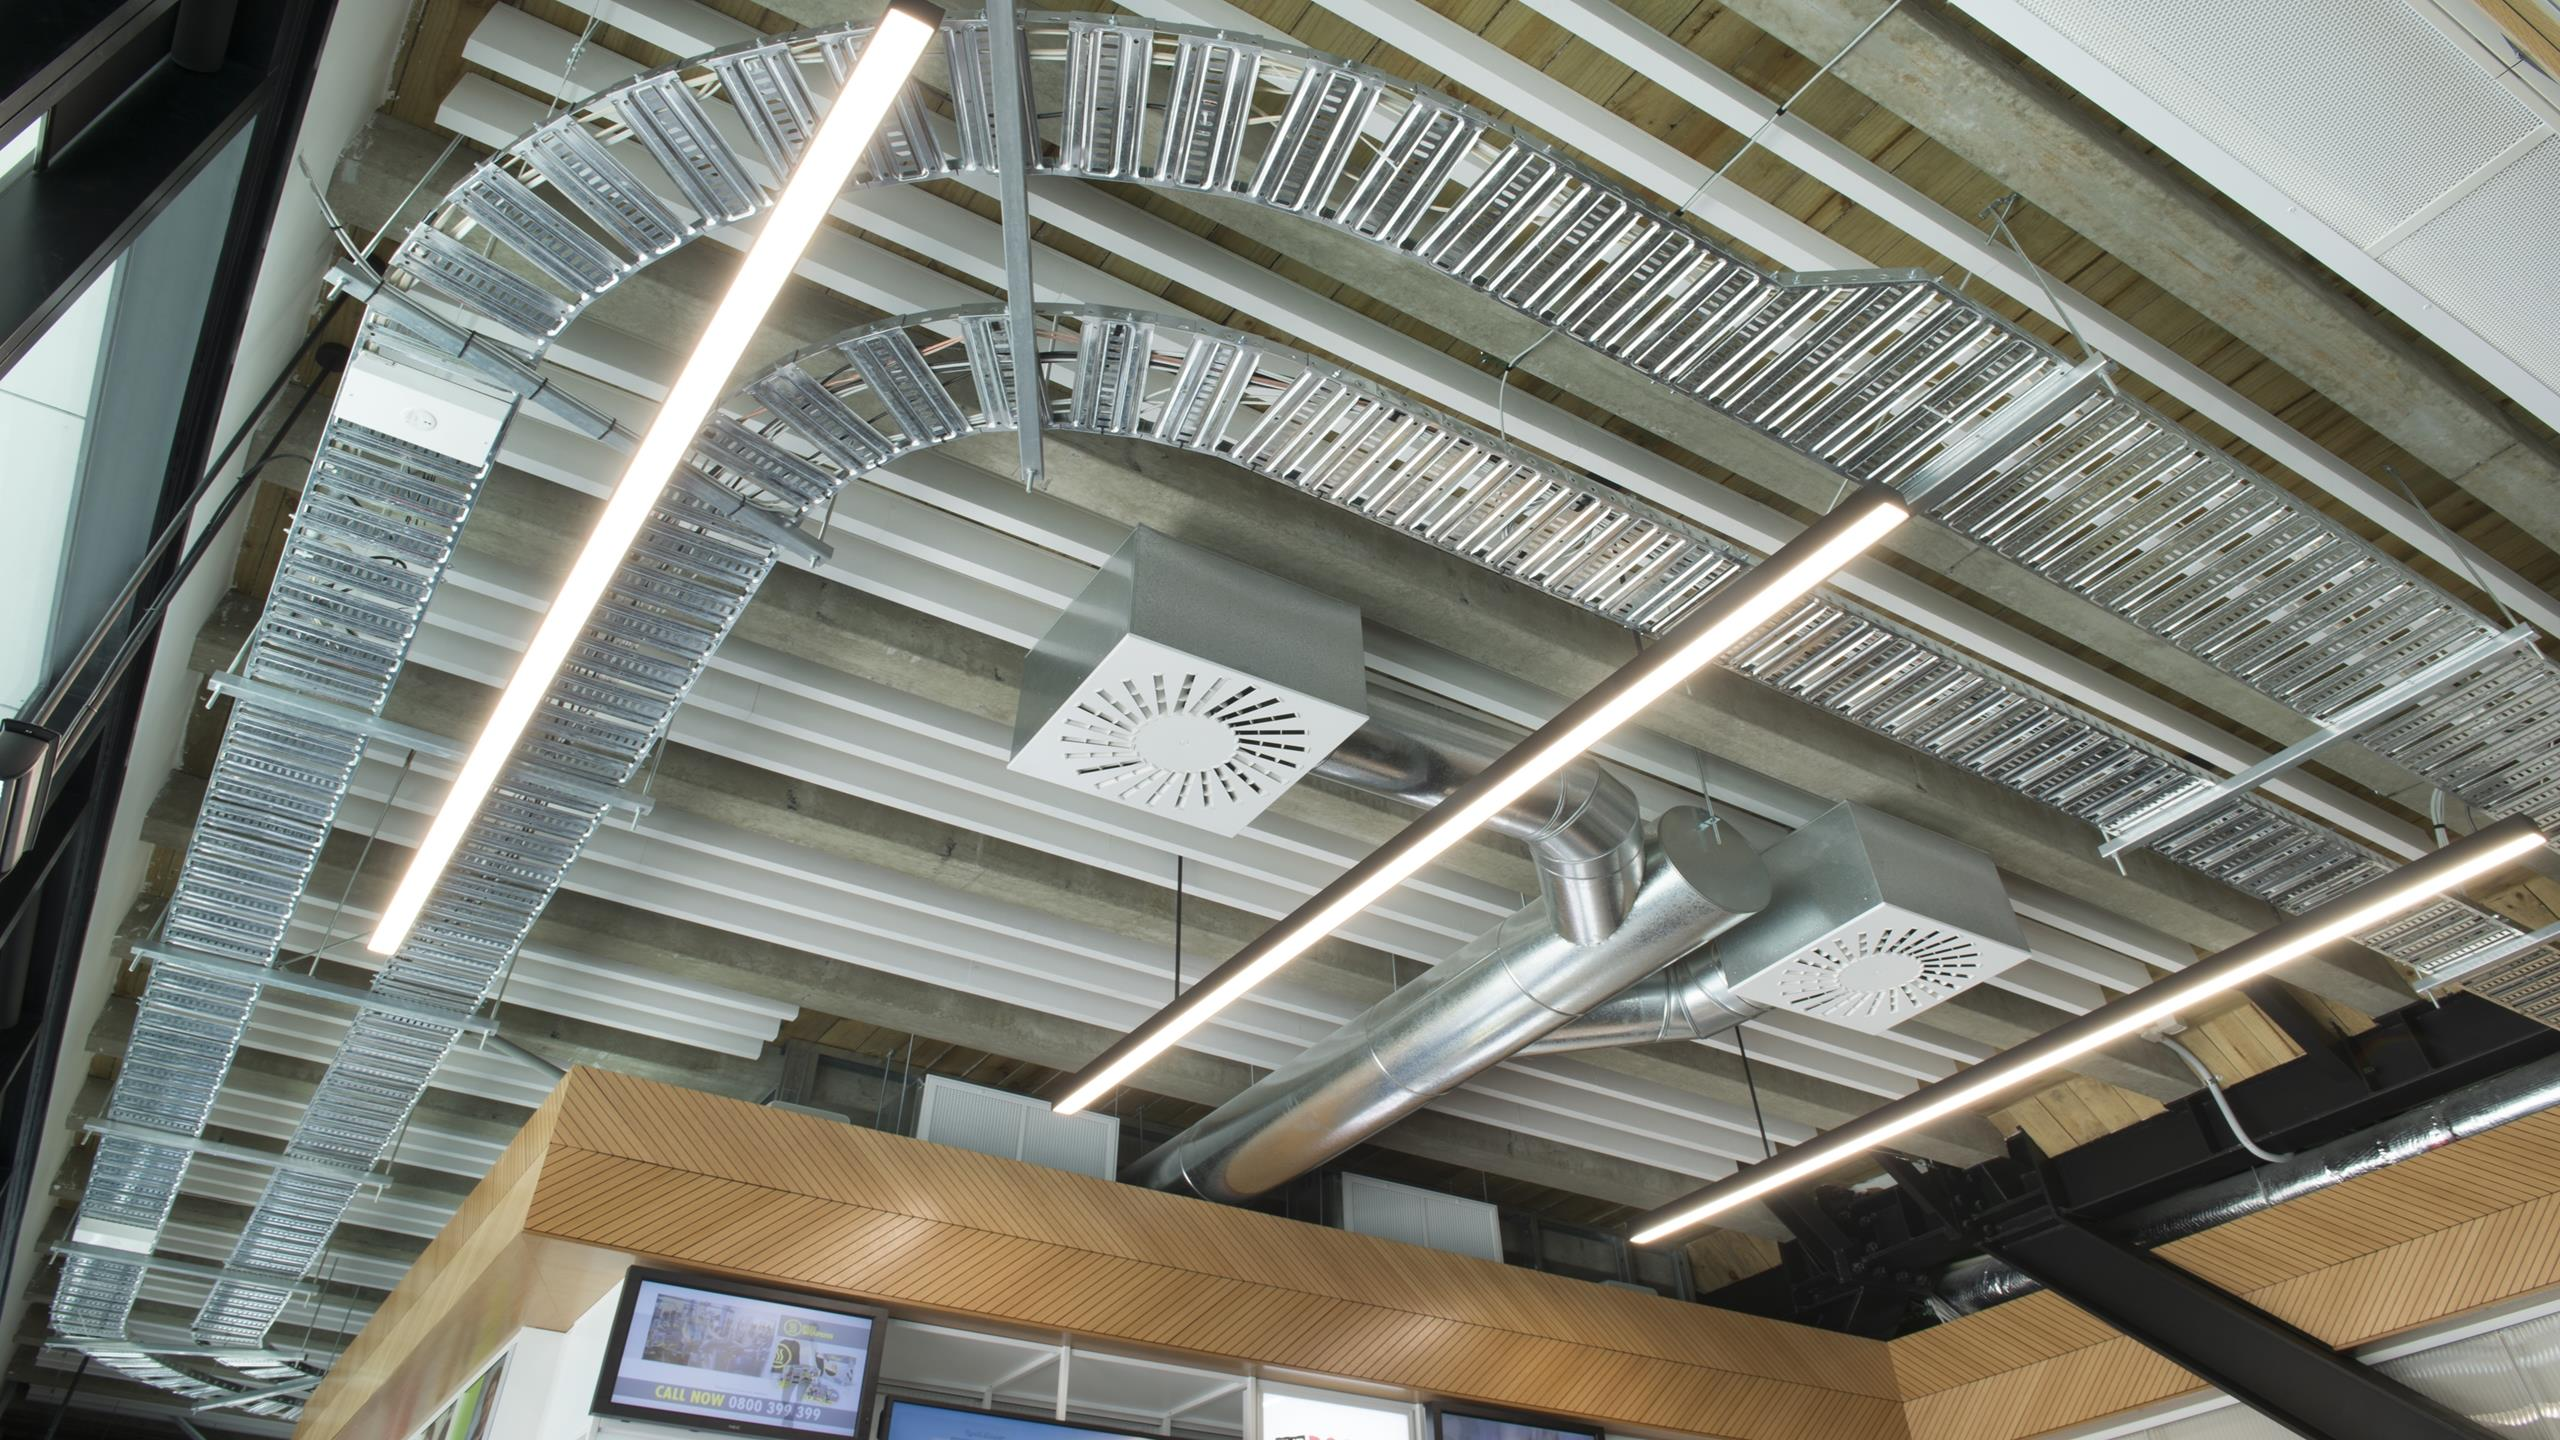 Media Works reception area showing white linear Baffle beams installed in exposed conduit ceiling plan